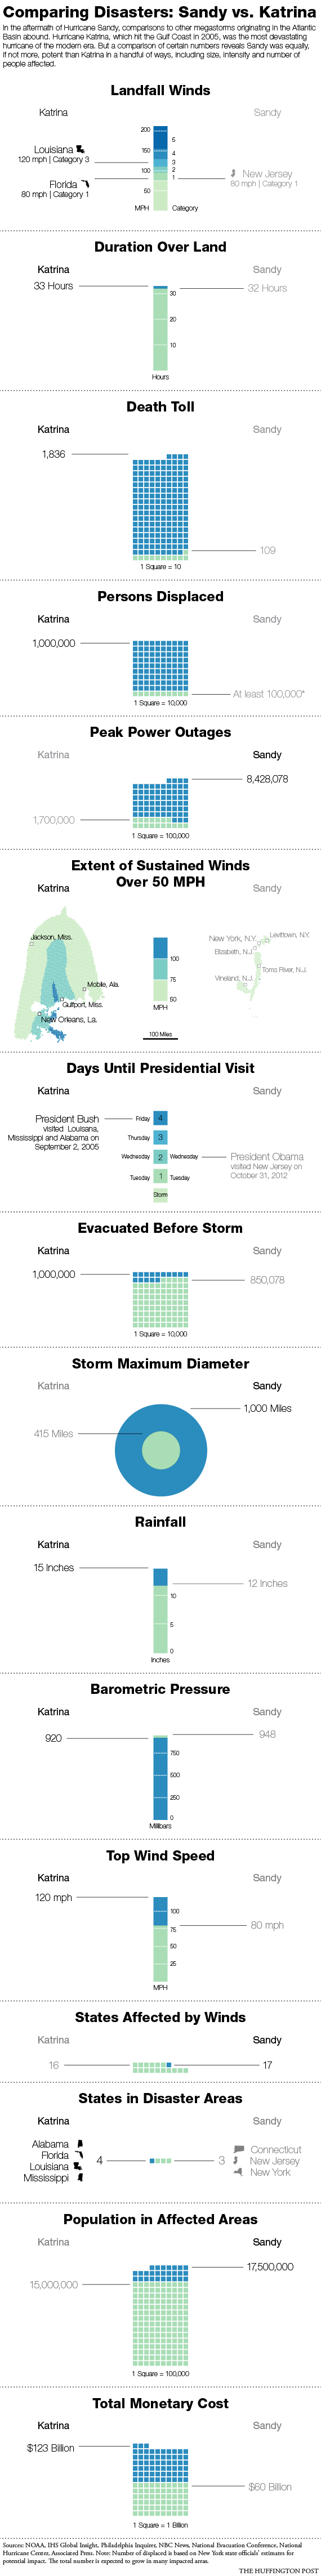 hurricane sandy vs katrina infographic examines destruction from  sandy v katrina charts